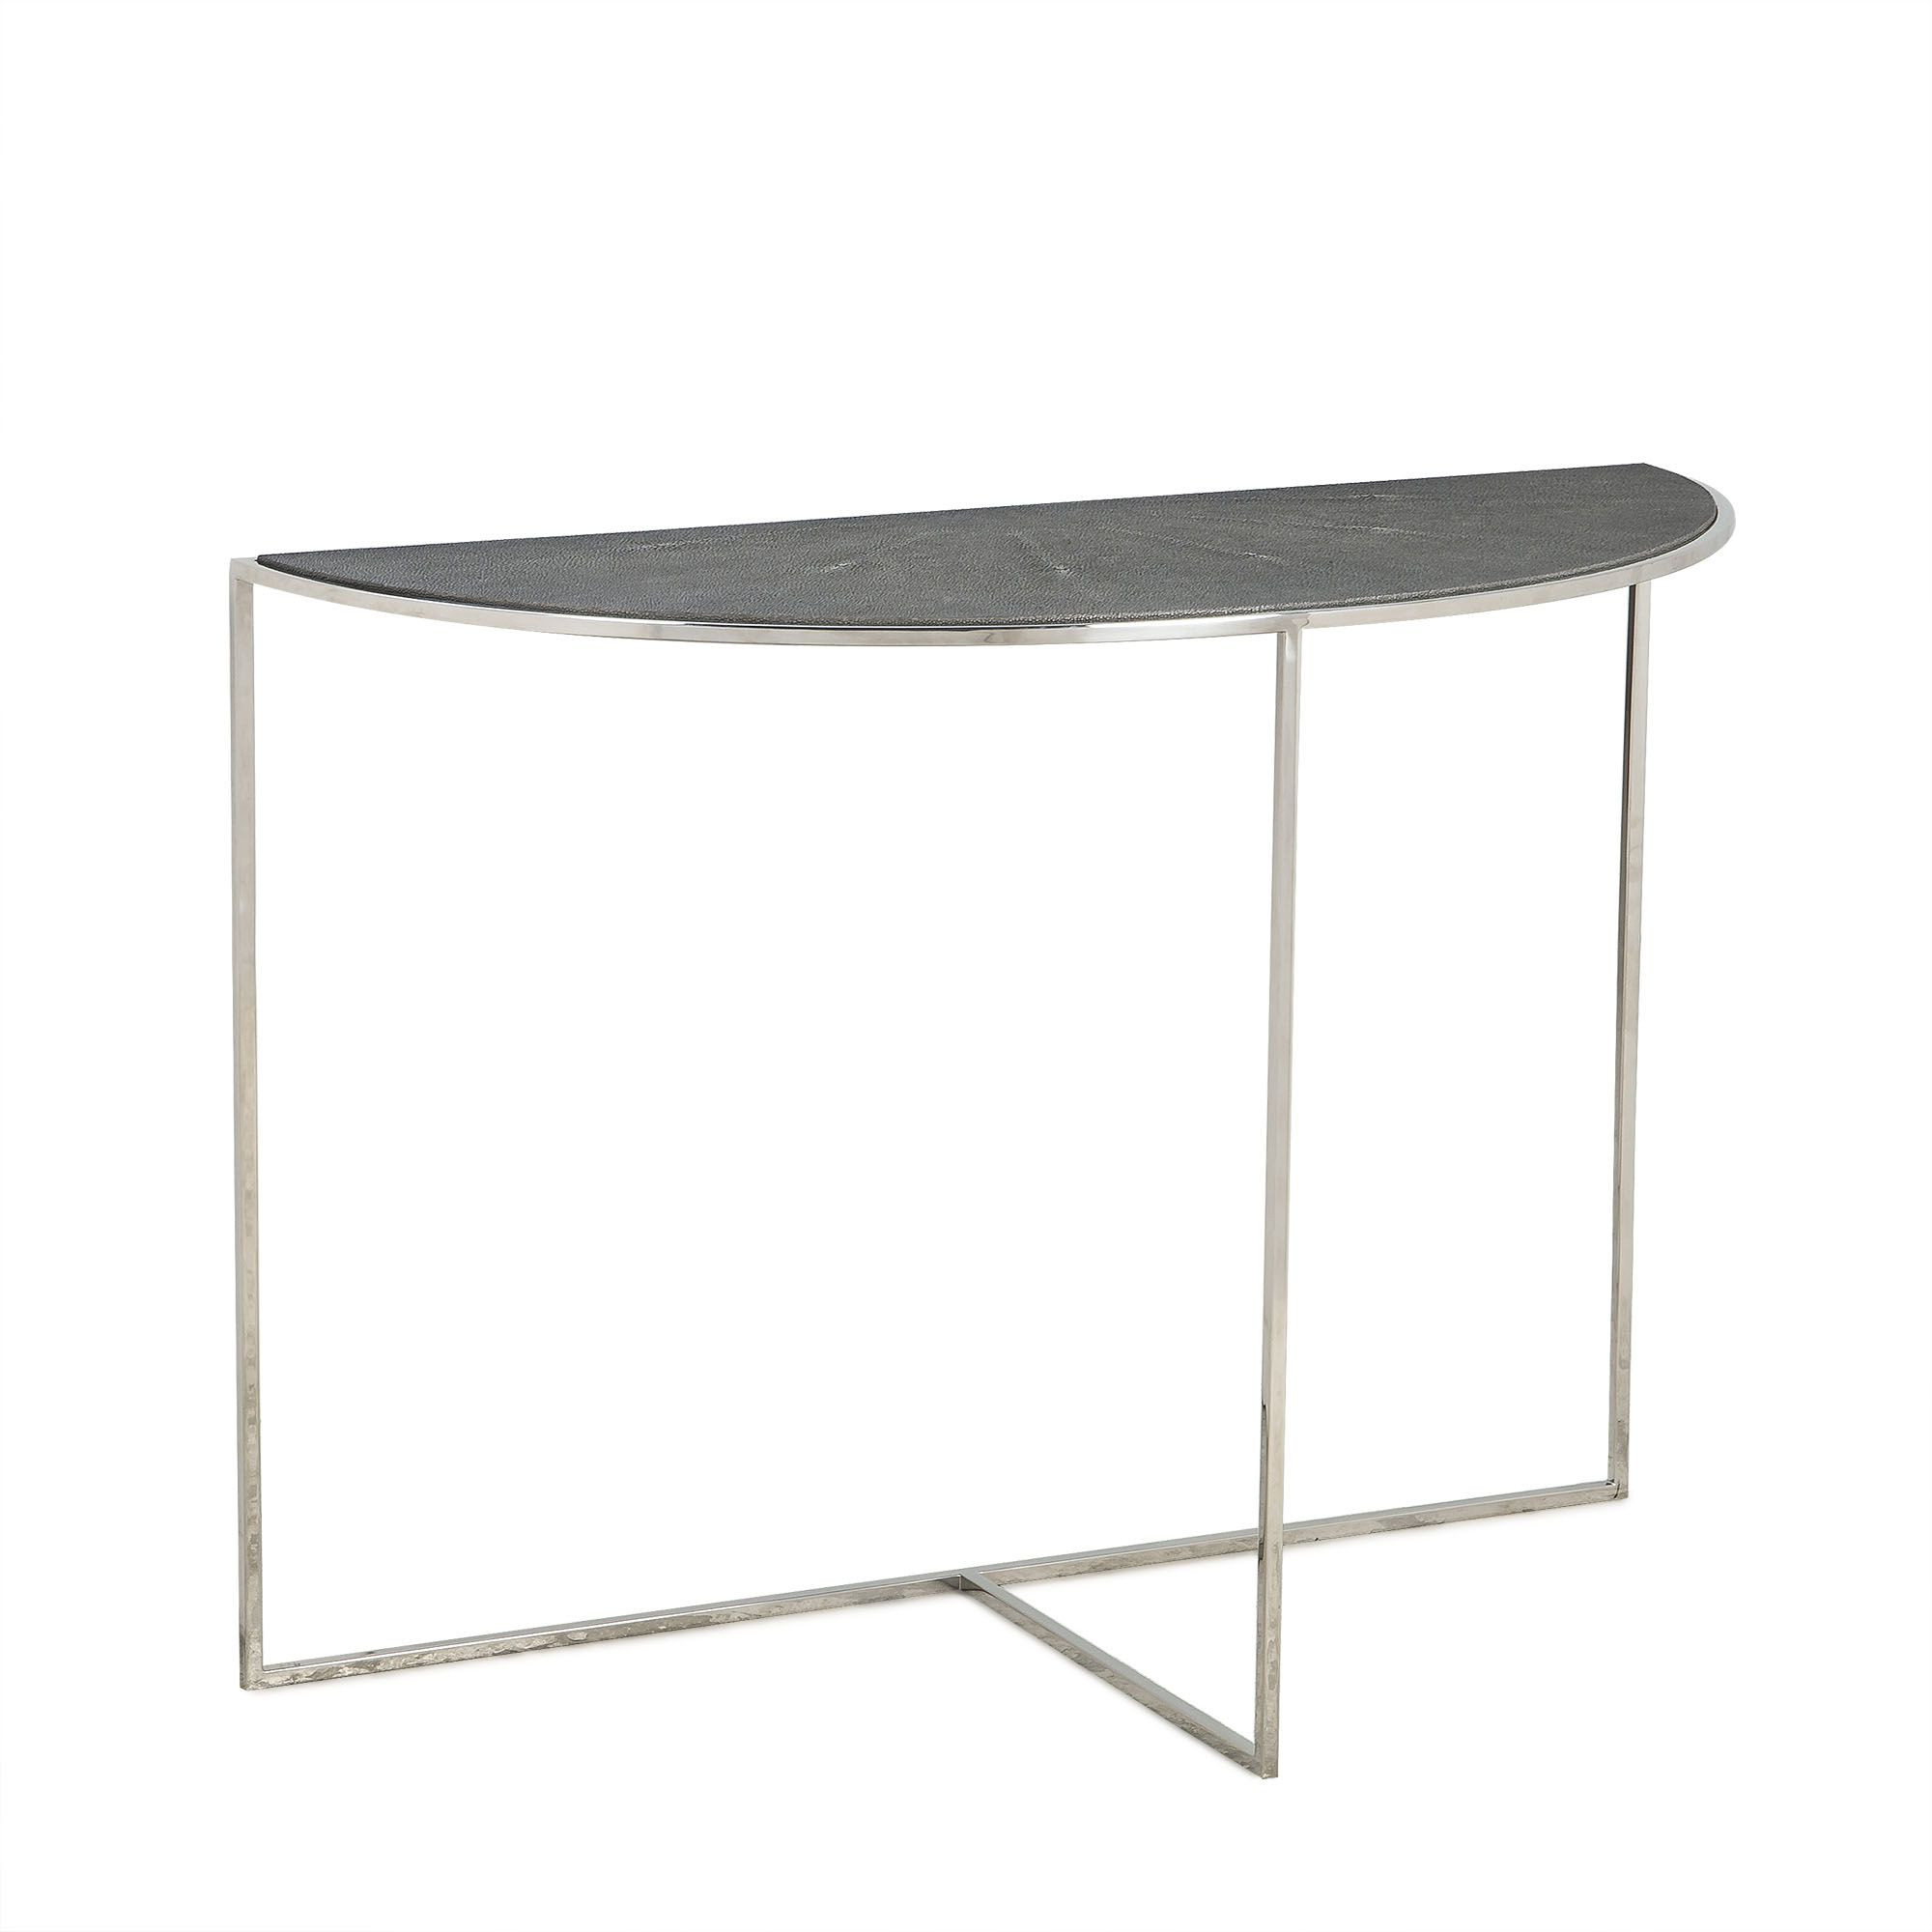 Living Room | Gwen Collection | Gwen Console Table | Transitional Pertaining To Elke Marble Console Tables With Brass Base (Gallery 16 of 20)